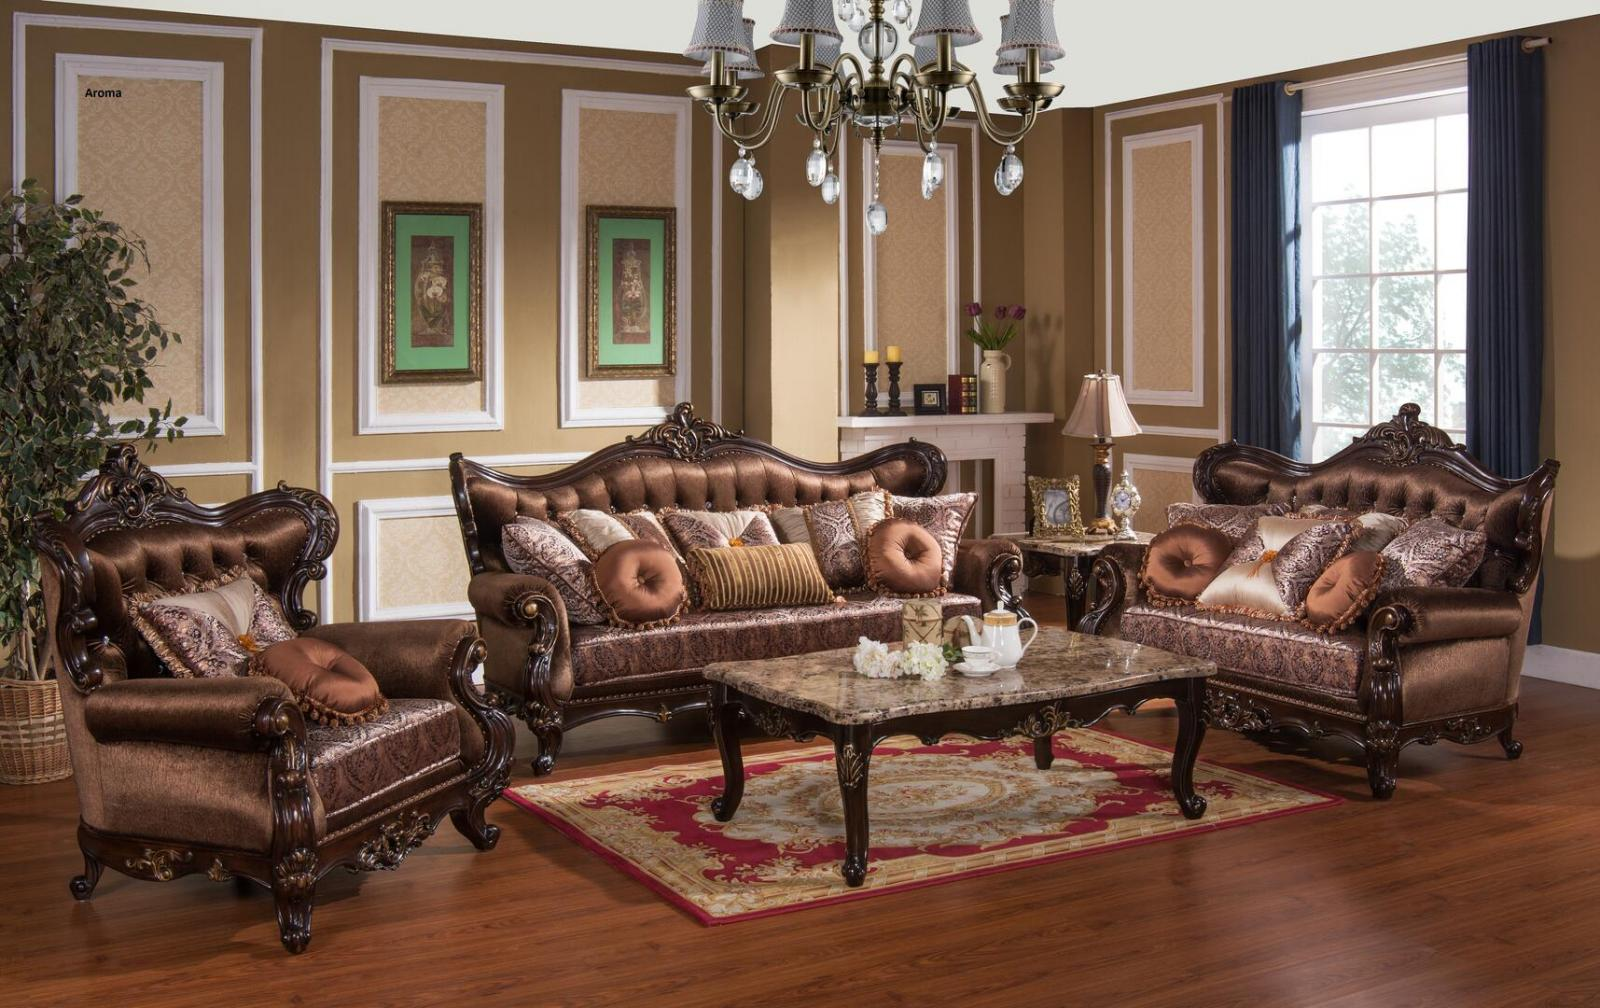 Traditional Cherry Fabric Sofa Loveseat Chair and Coffee Table 4 pcs Cosmos Furniture Aroma-Set-4